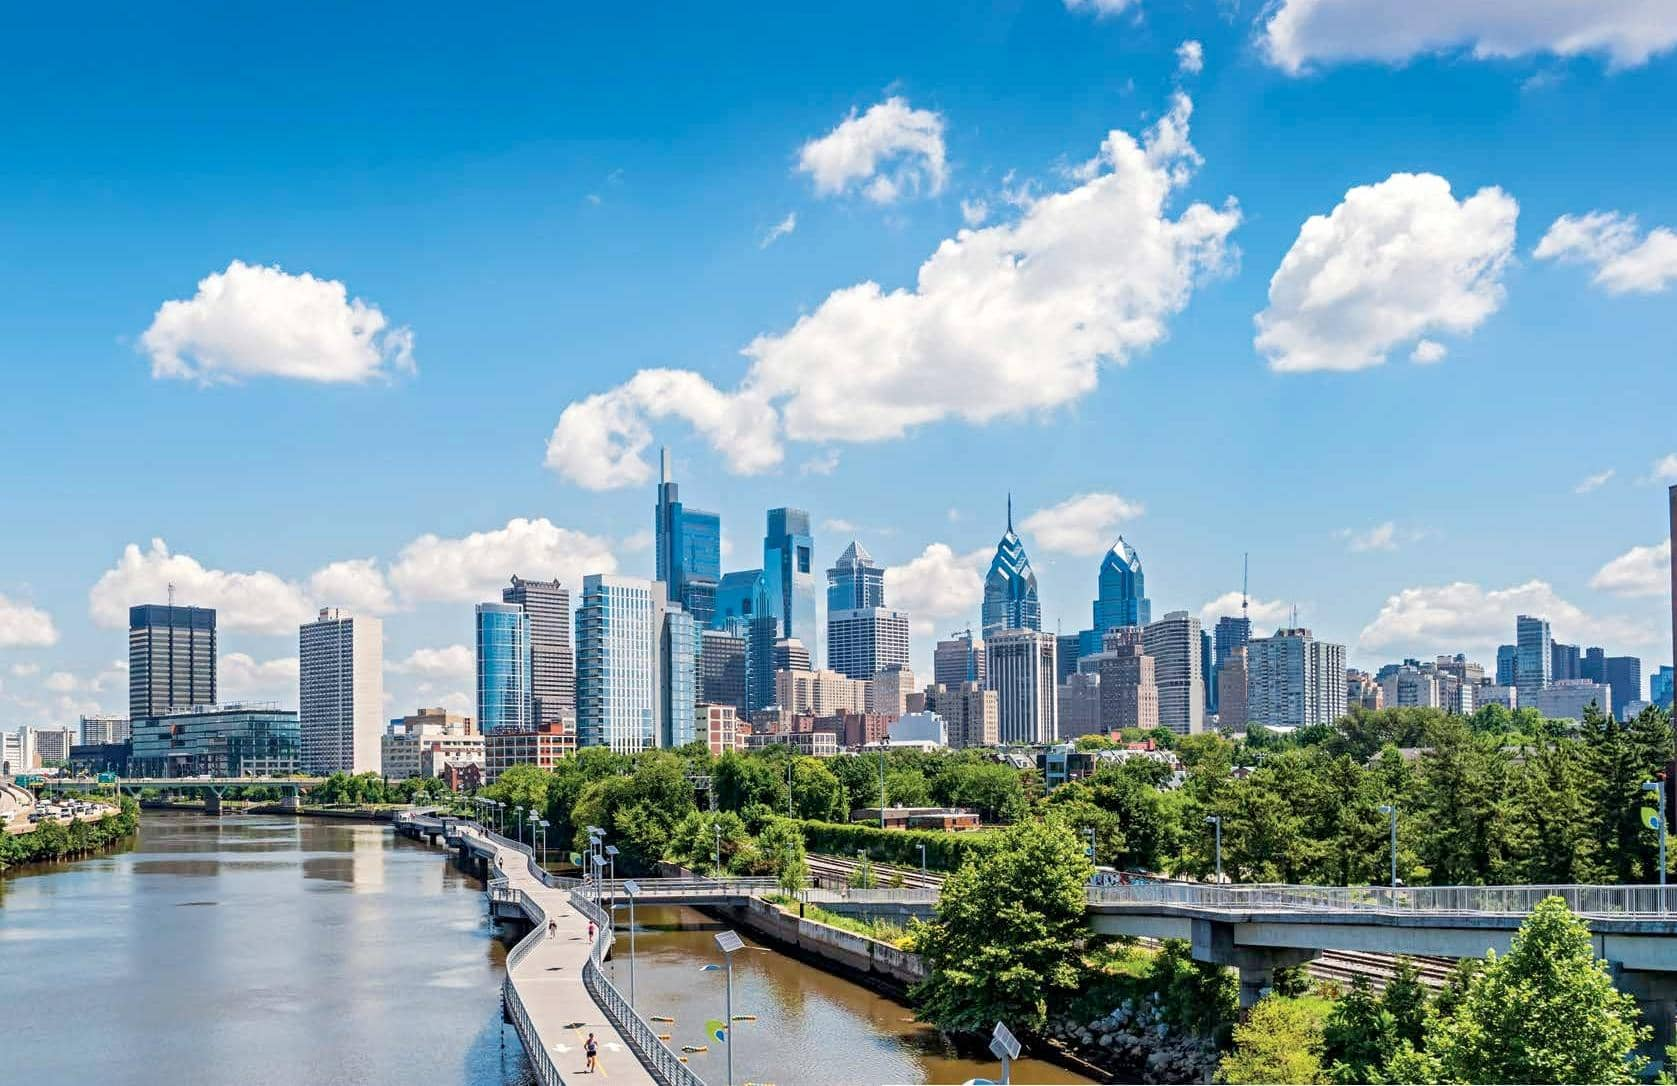 PHILLY HITS NEW HEIGHTS